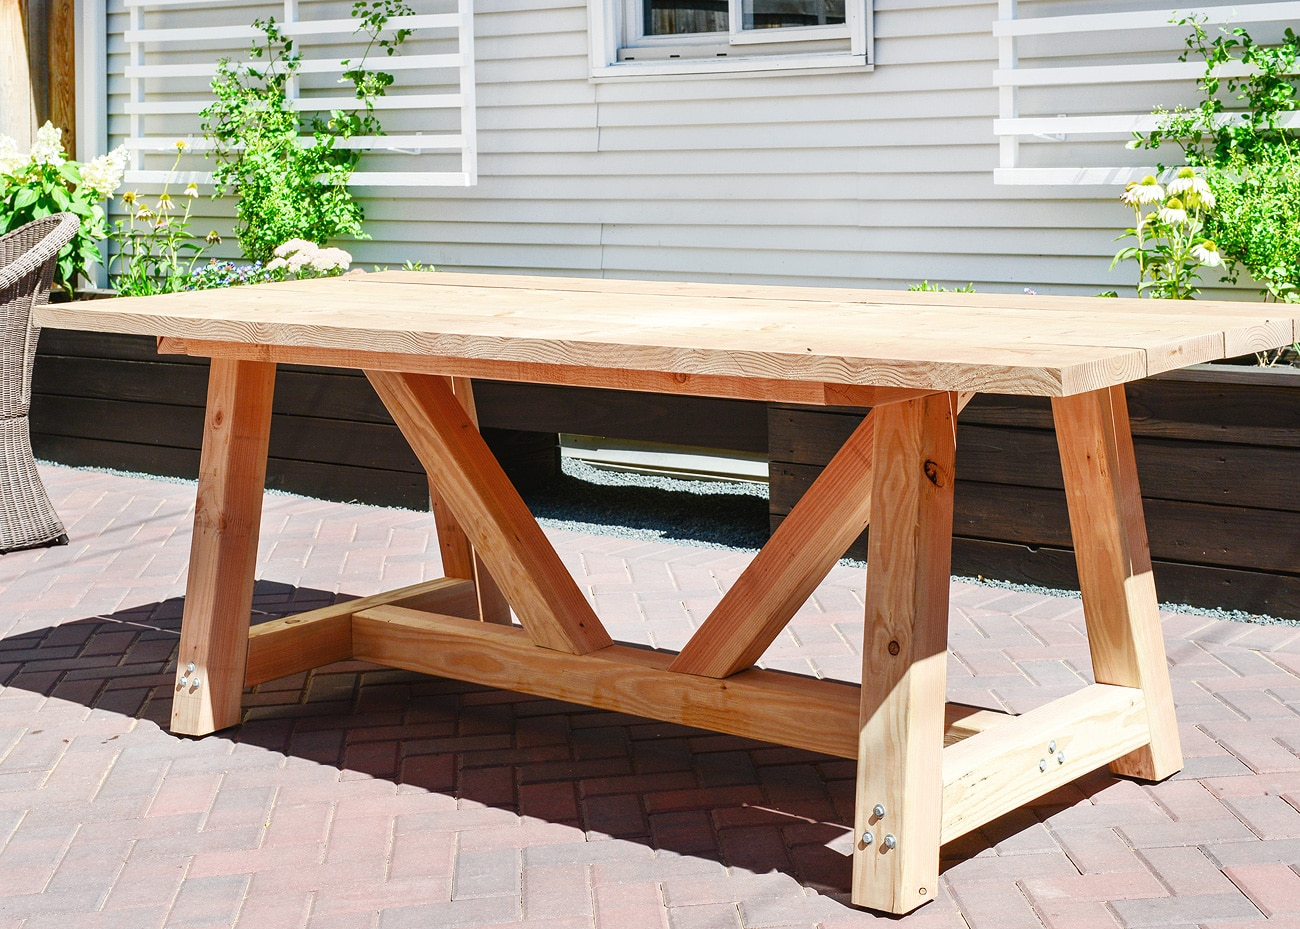 Diy Patio Table And Chairs Plans To Build Wood Picnic Table Quick Woodworking Projects